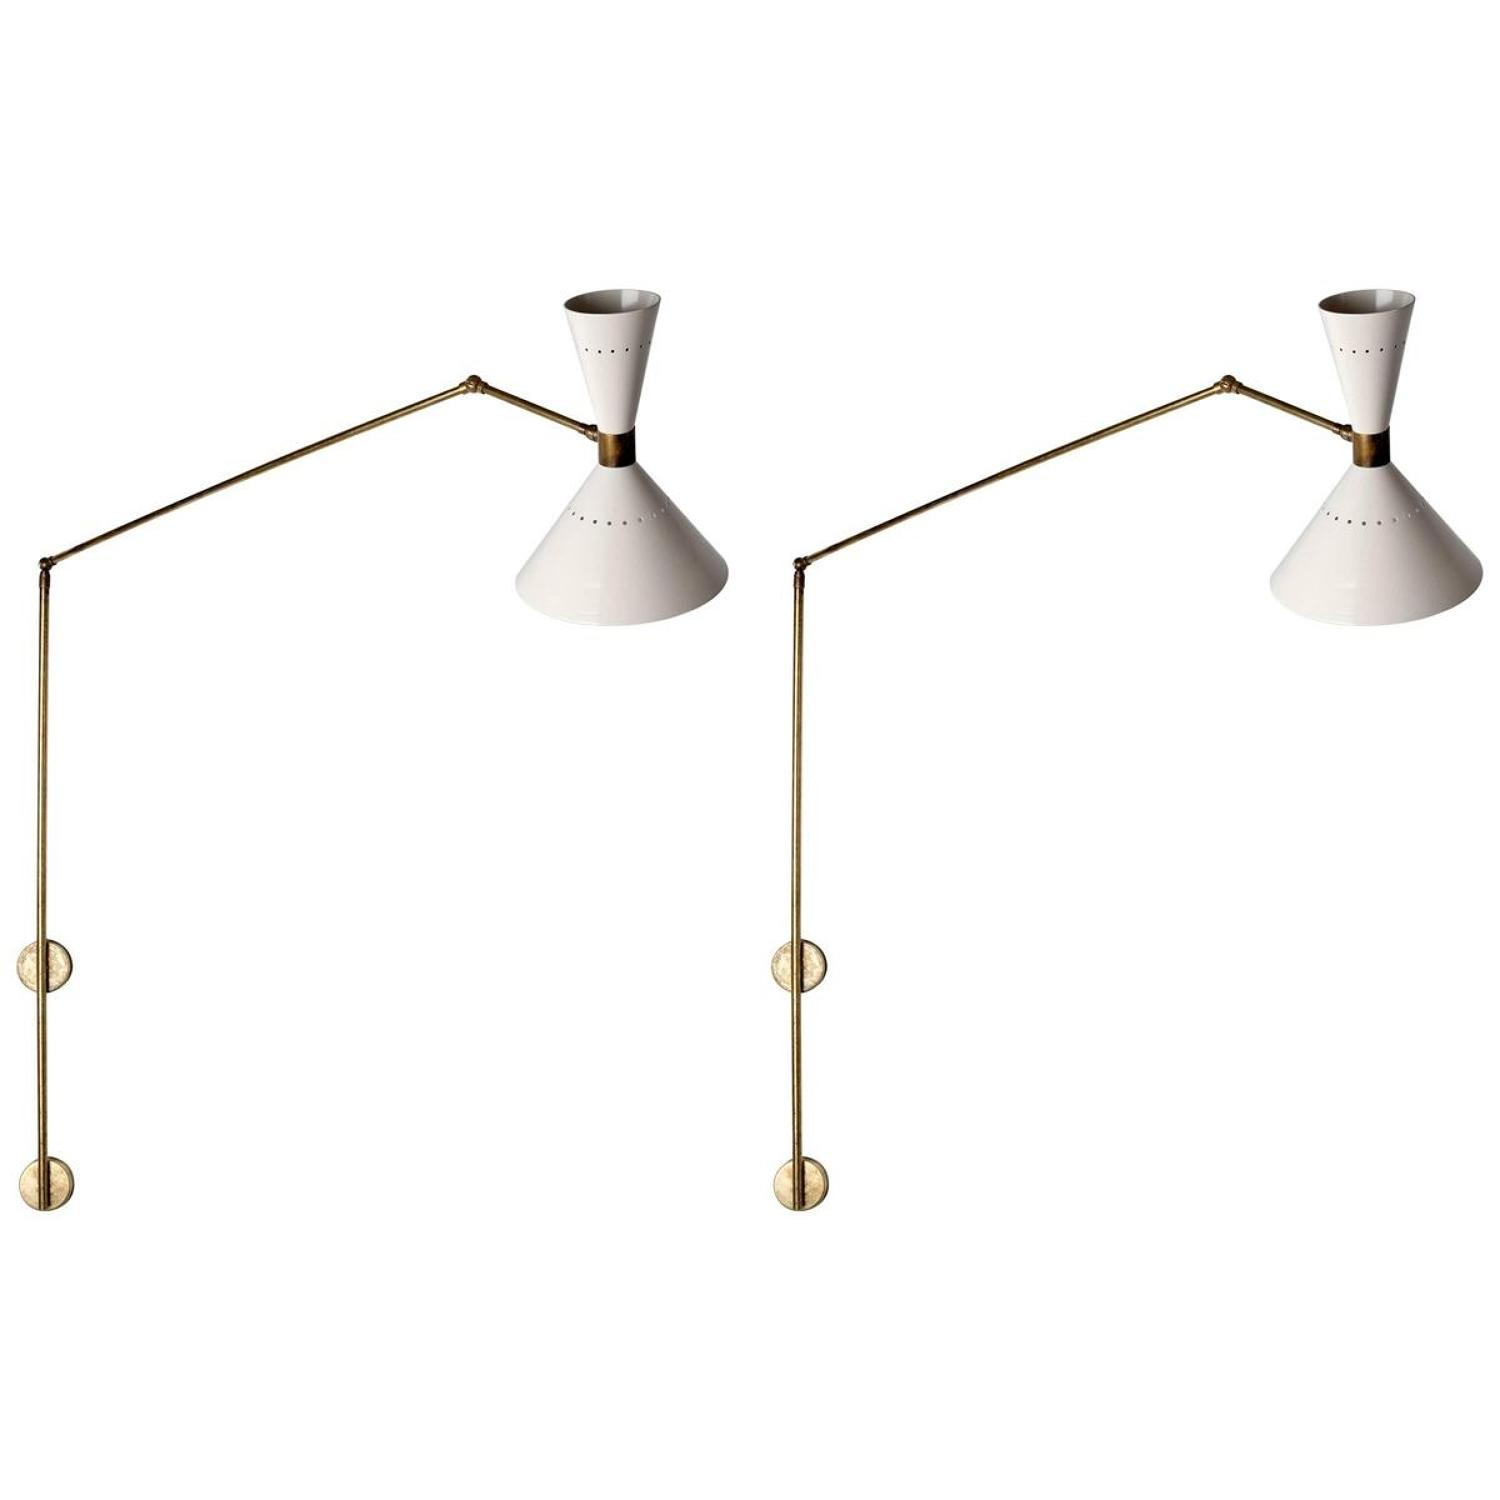 Stylish Pair of Stilnovo 1950s Italian Wall Lights